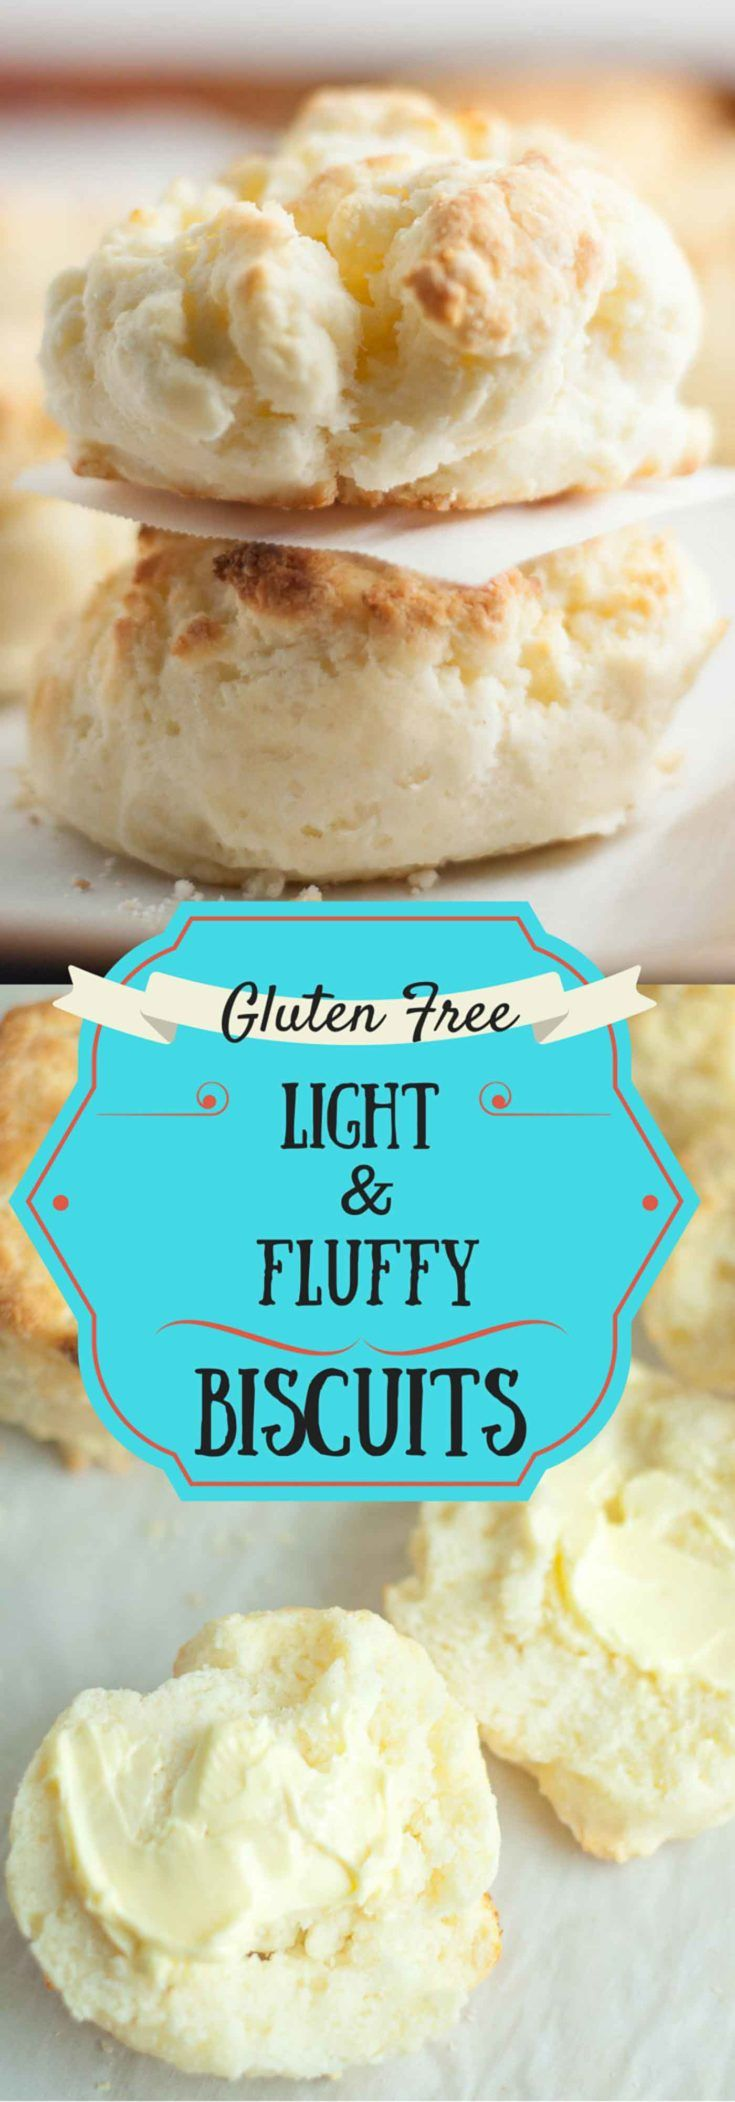 These Light and Fluffy Gluten Free biscuits are so good, no one will ever know the difference. Plus these drop biscuits are so easy and quick to throw together!